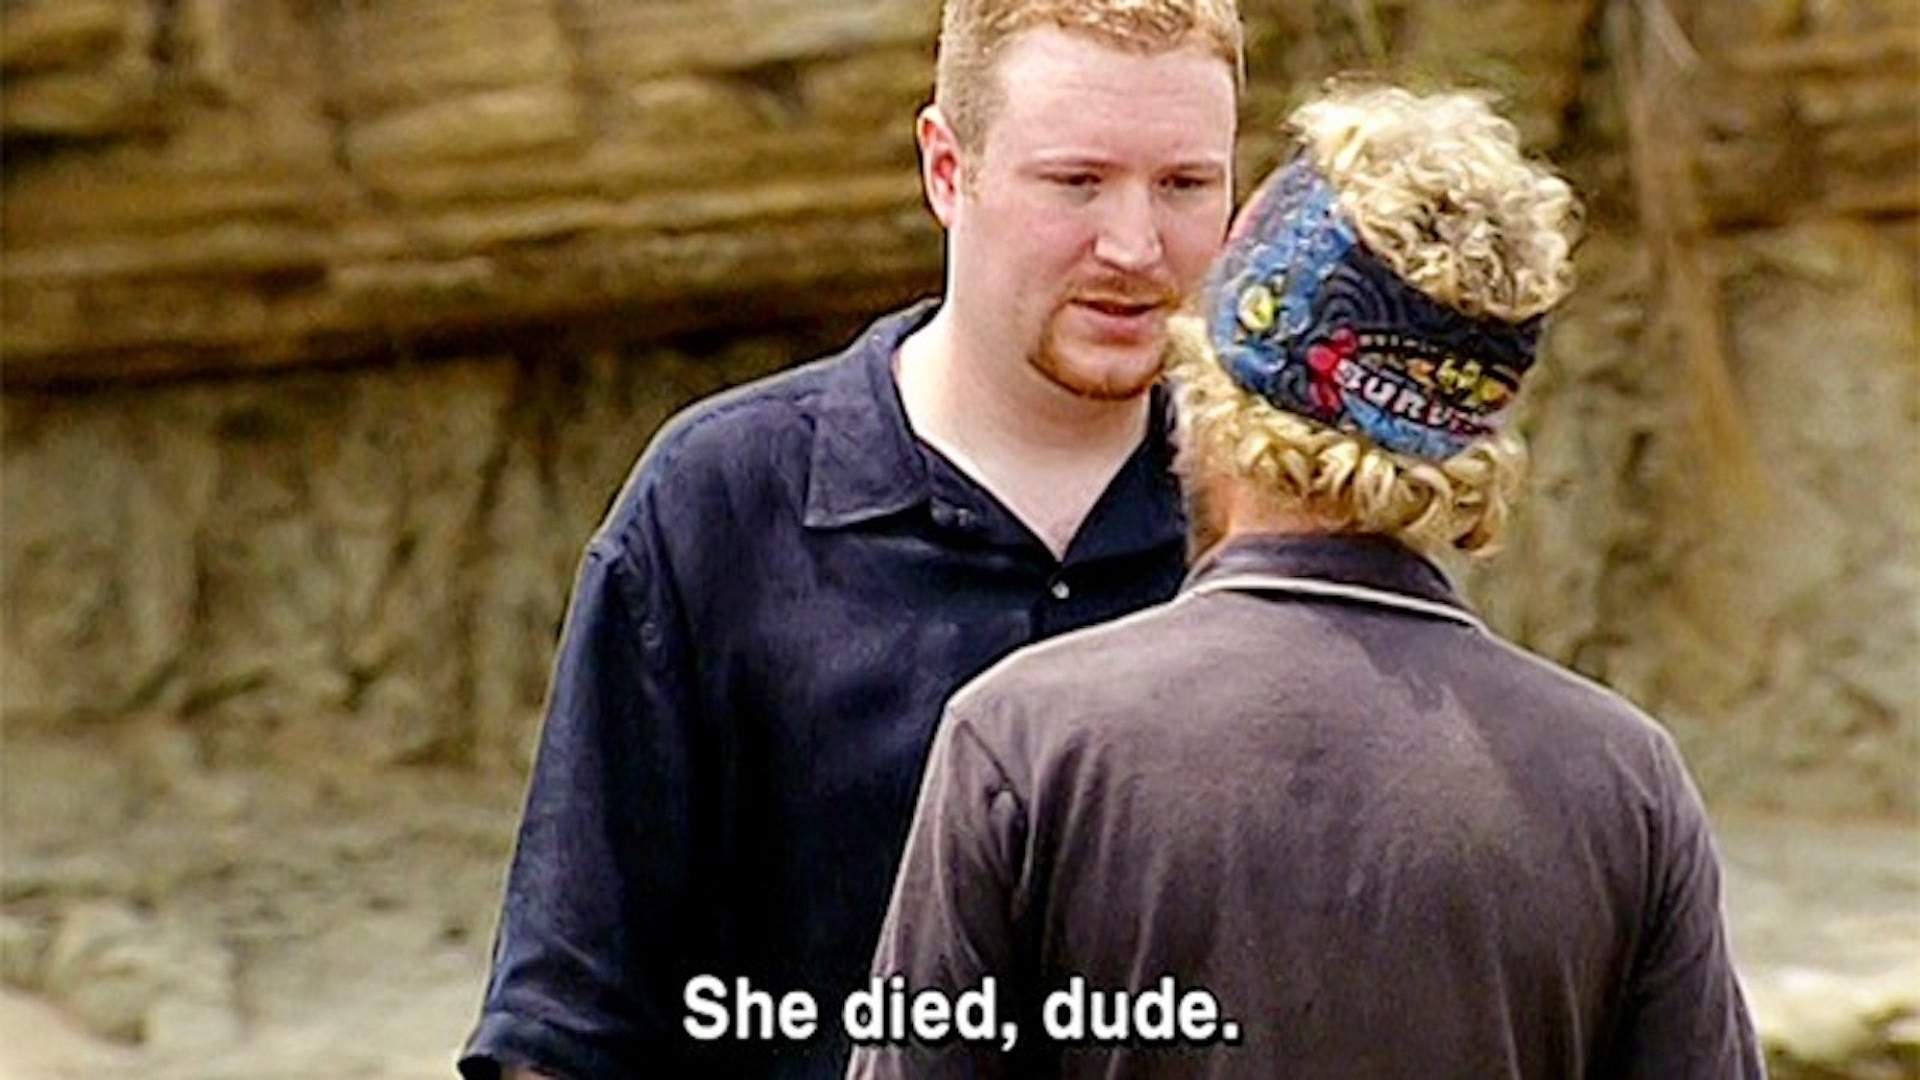 Jonny Fairplay's grandma lie on Survivor: Pearl Islands